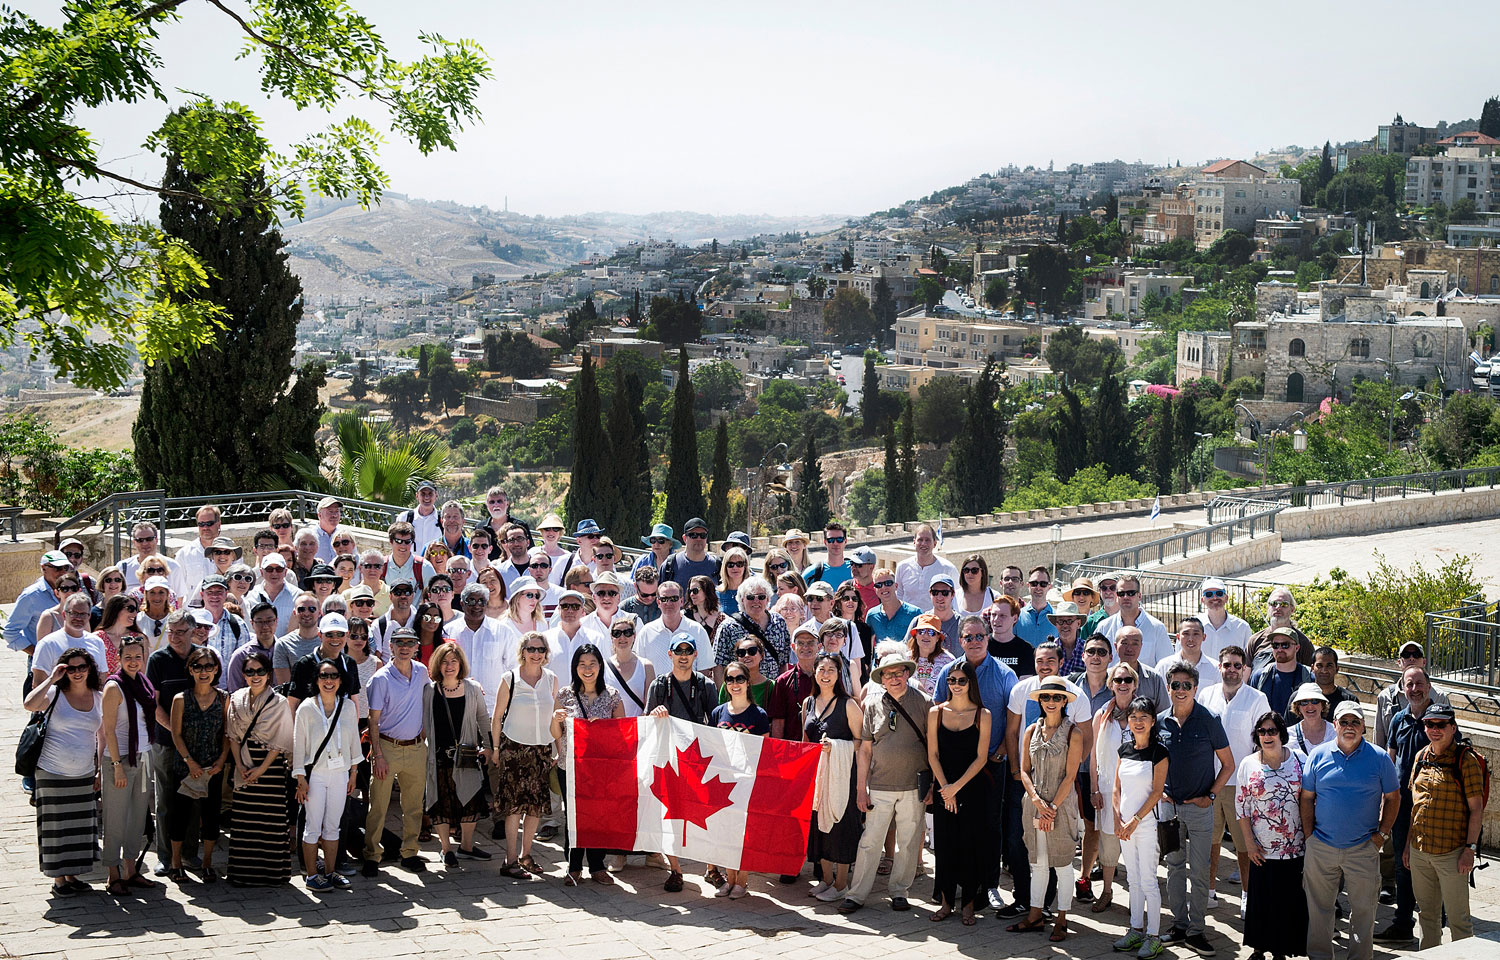 The Toronto Symphony Orchestra's tour in Jerusalem helps to build bridges in music from Canada to Israel.